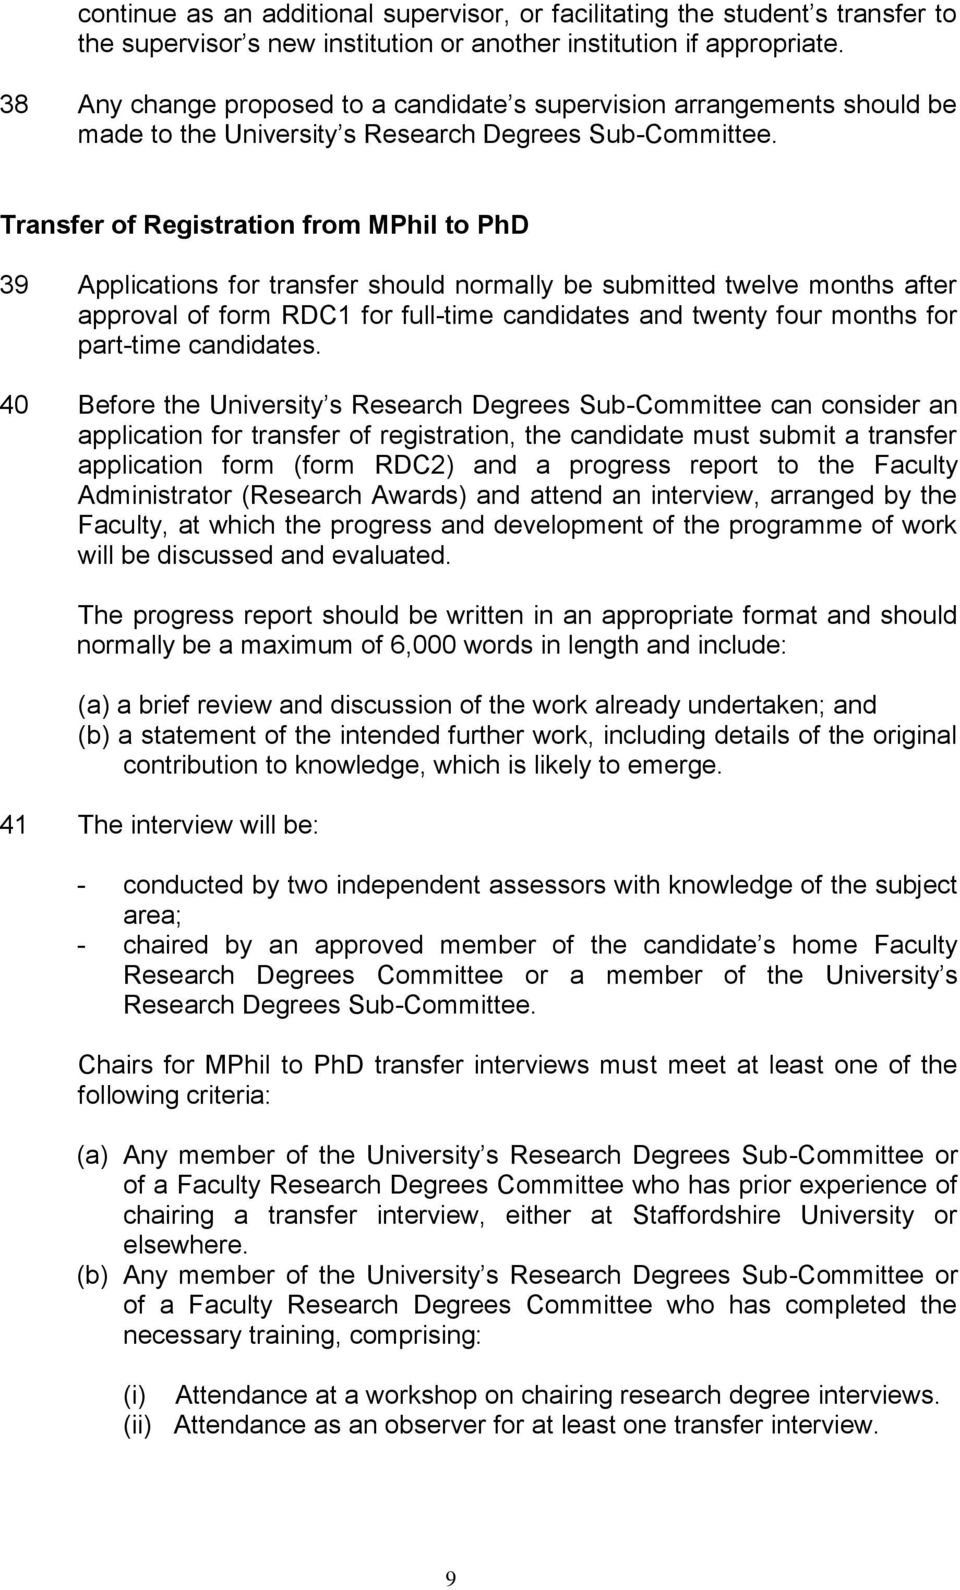 Transfer of Registration from MPhil to PhD 39 Applications for transfer should normally be submitted twelve months after approval of form RDC1 for full-time candidates and twenty four months for